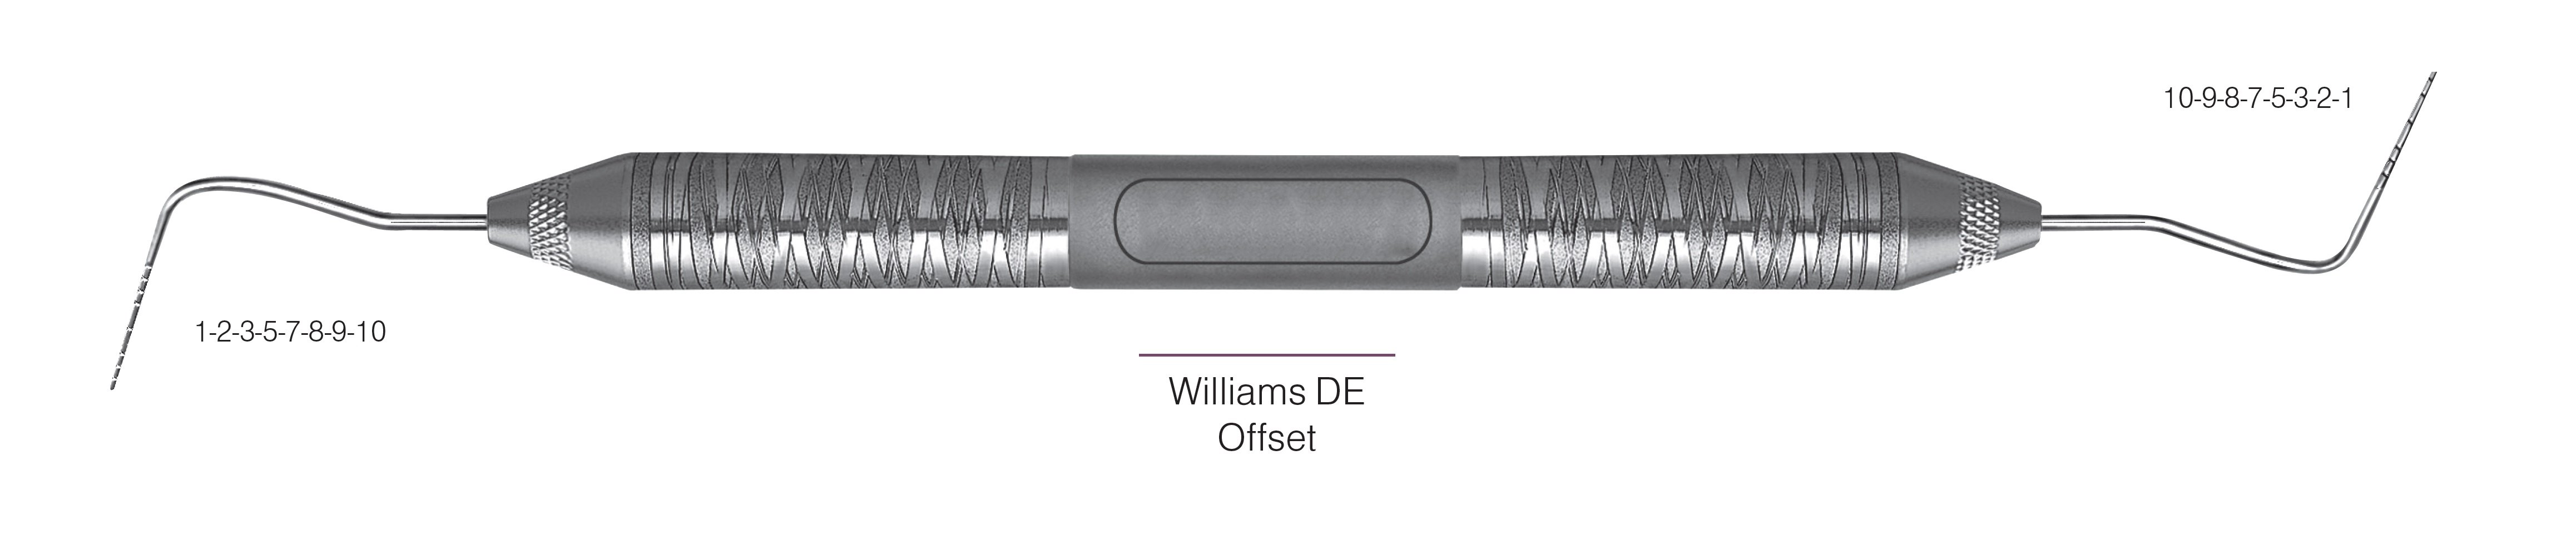 HF-PWD6-6, PROBES DOUBLE-ENDED Williams DE/Offset, Black markings, 1-2-3-5-7-8-9-10 mm & 10-9-8-7-5-3-2-1 mm, Handle Satin Steel, Aluminum Titanium Nitride (AlTiN) Coating, Double Ended